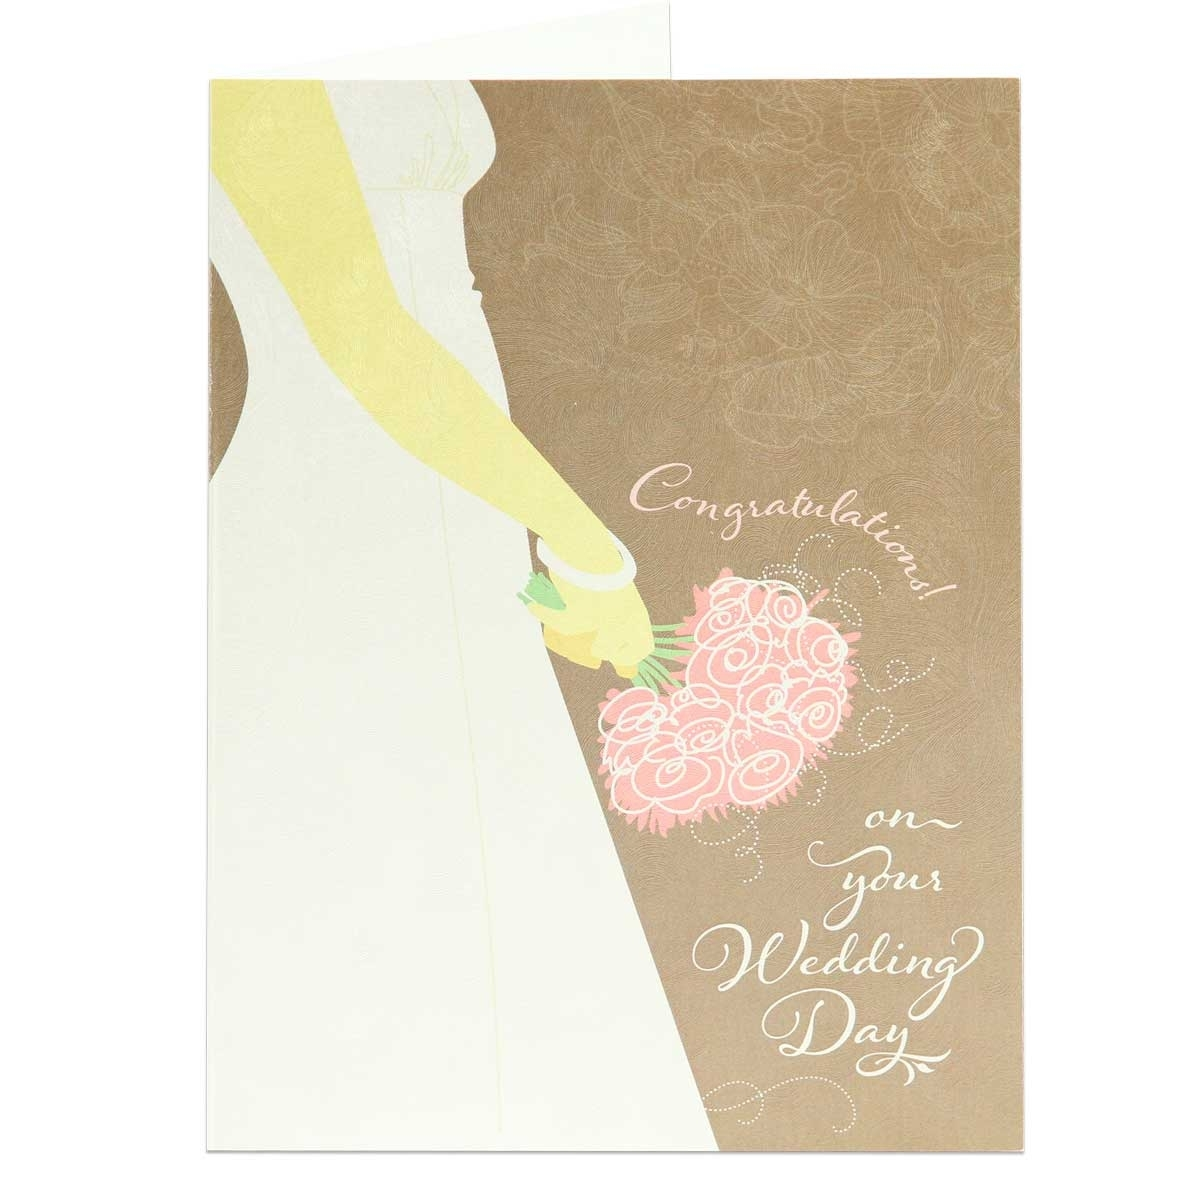 Biblical Wedding Congratulations Card Based On Matthew 195 6